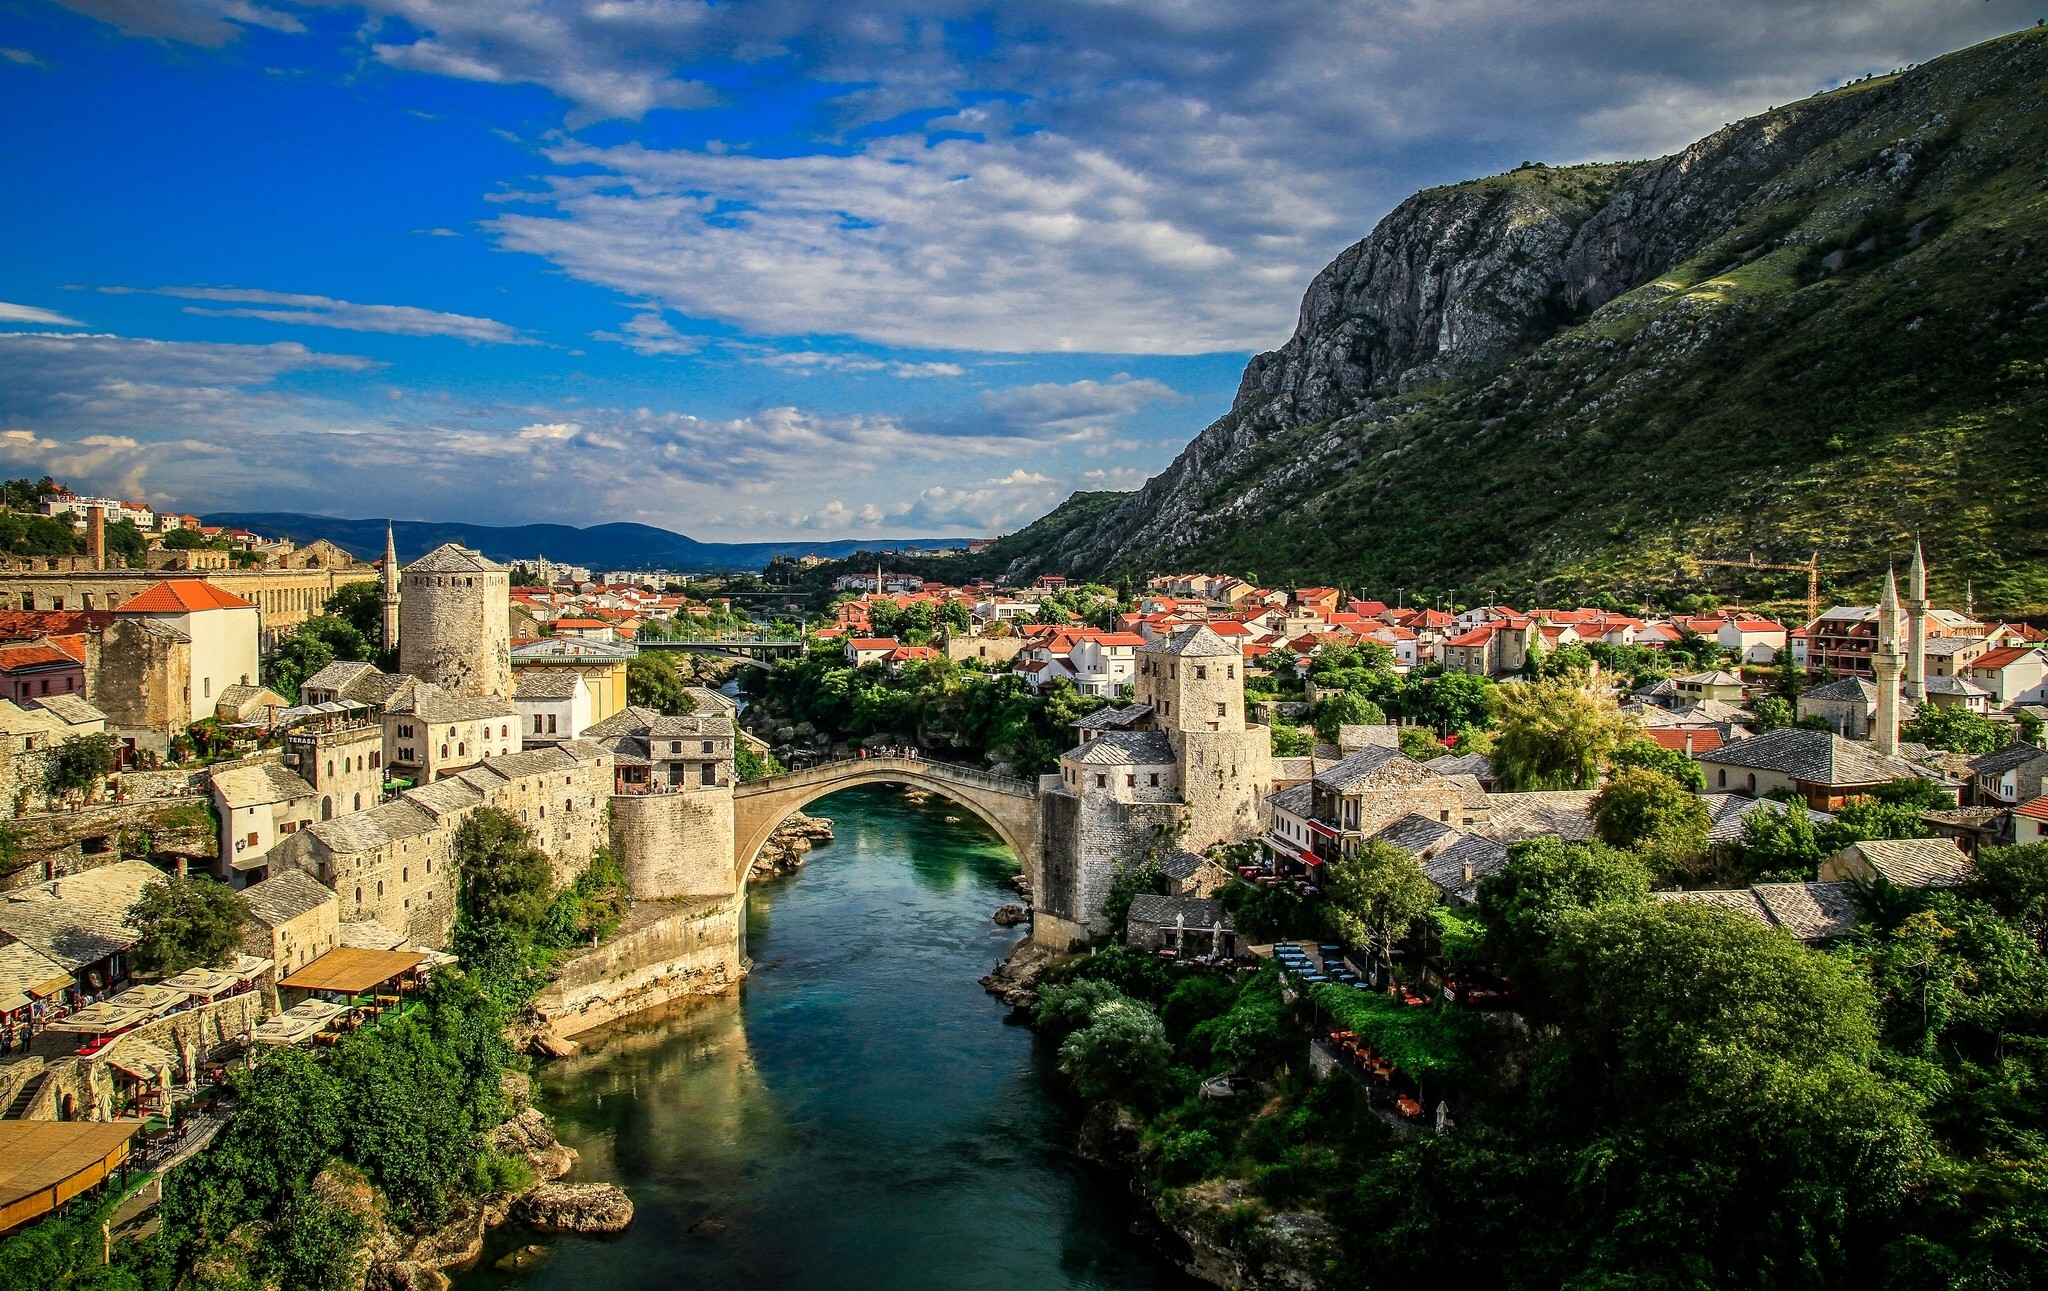 Hit Booker Mostar | Luxury Villas | Holiday Homes | Apartments | Rooms | Tours efa63bbb707504314198ede89be97591-1 Mostar full day tour: Experience local life from Dubrovnik